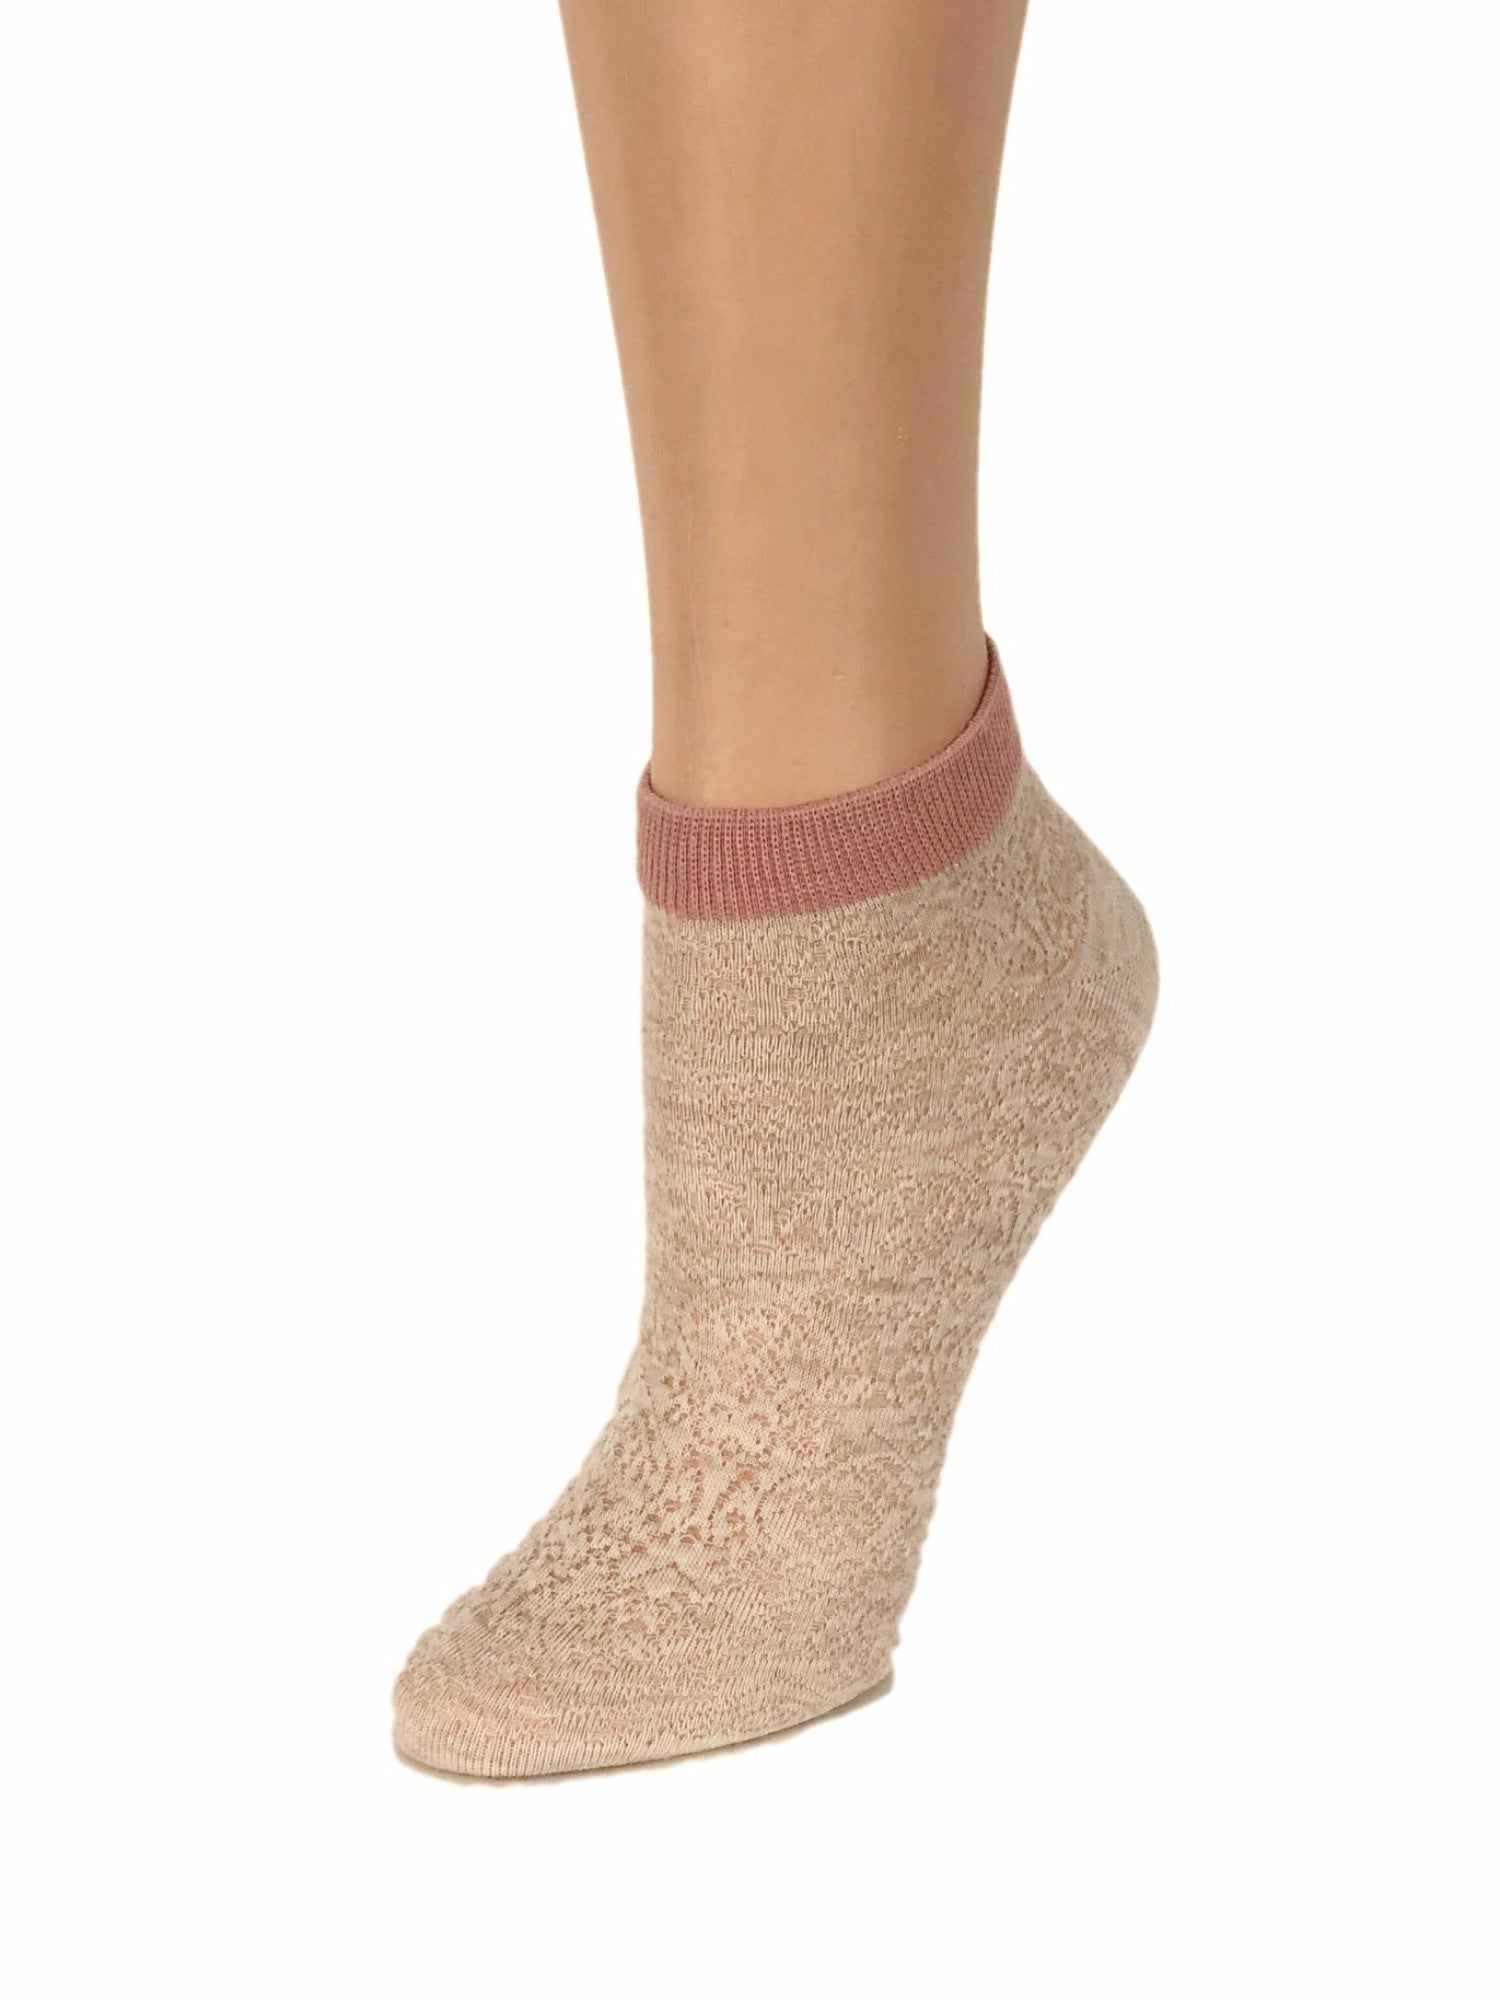 Pink Stripped Cream Ankle Sheer Socks - Global Trendz Fashion®